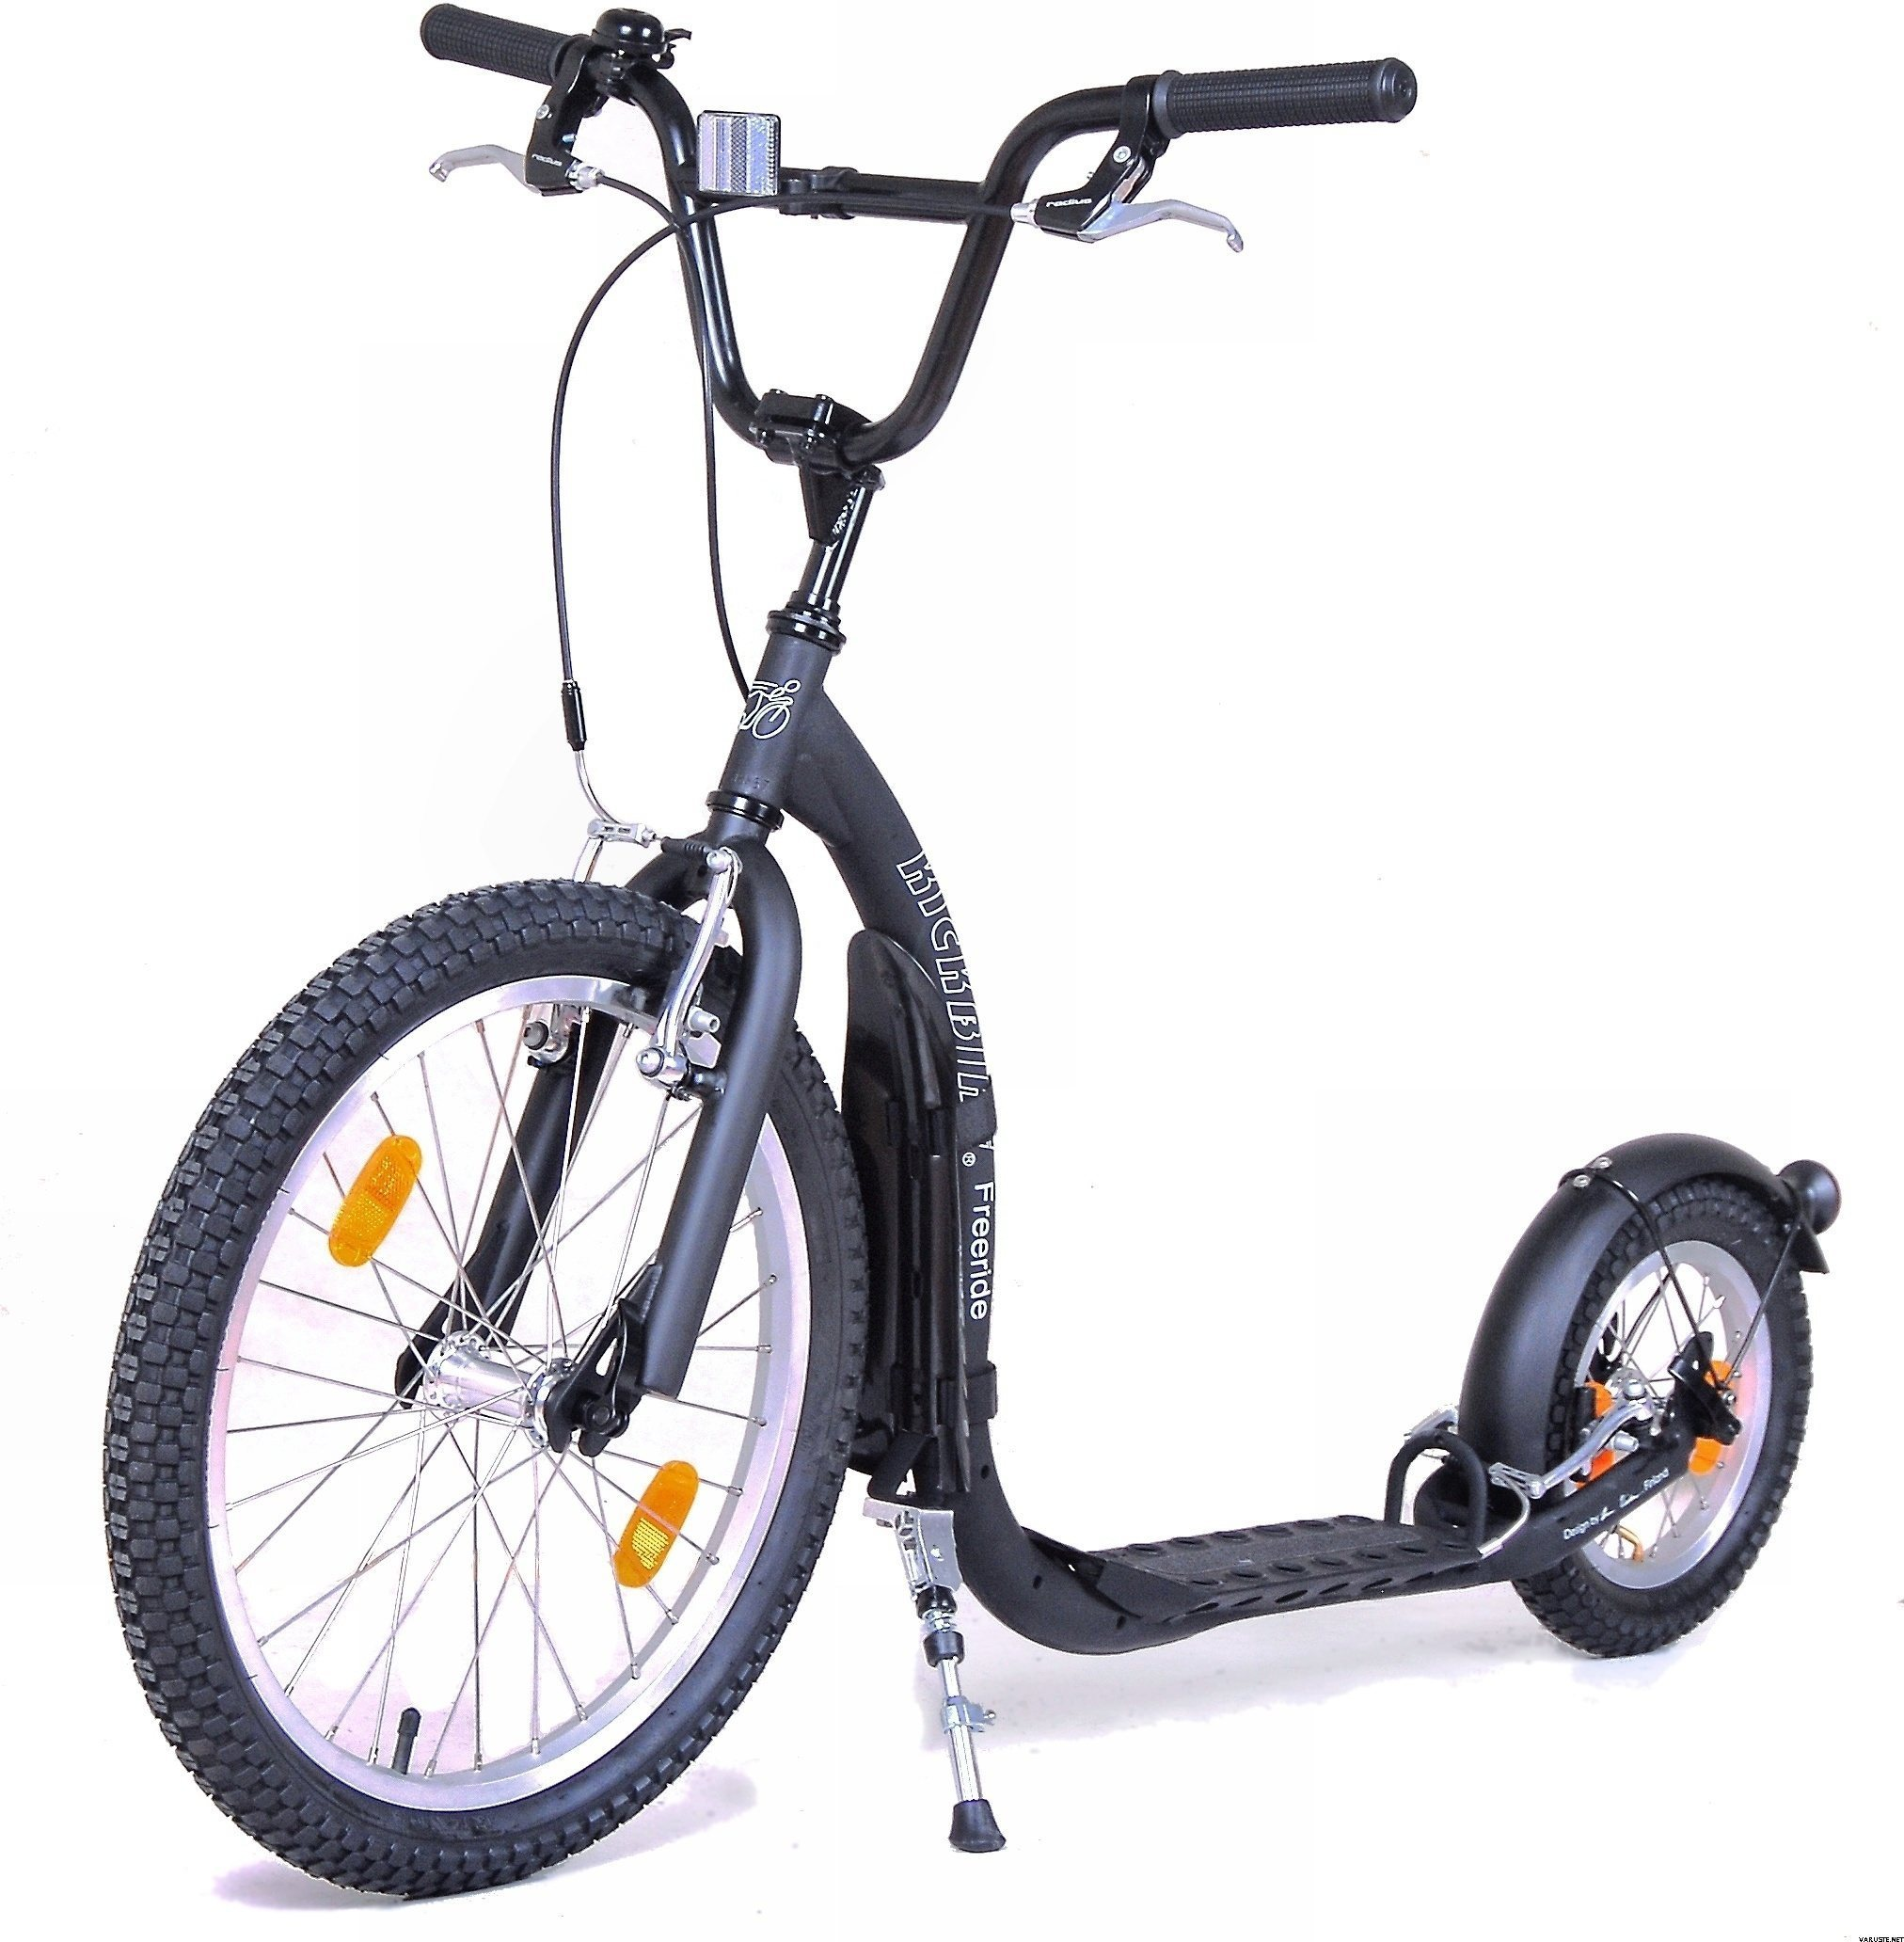 Kickbike Freeride + water bottle and cage